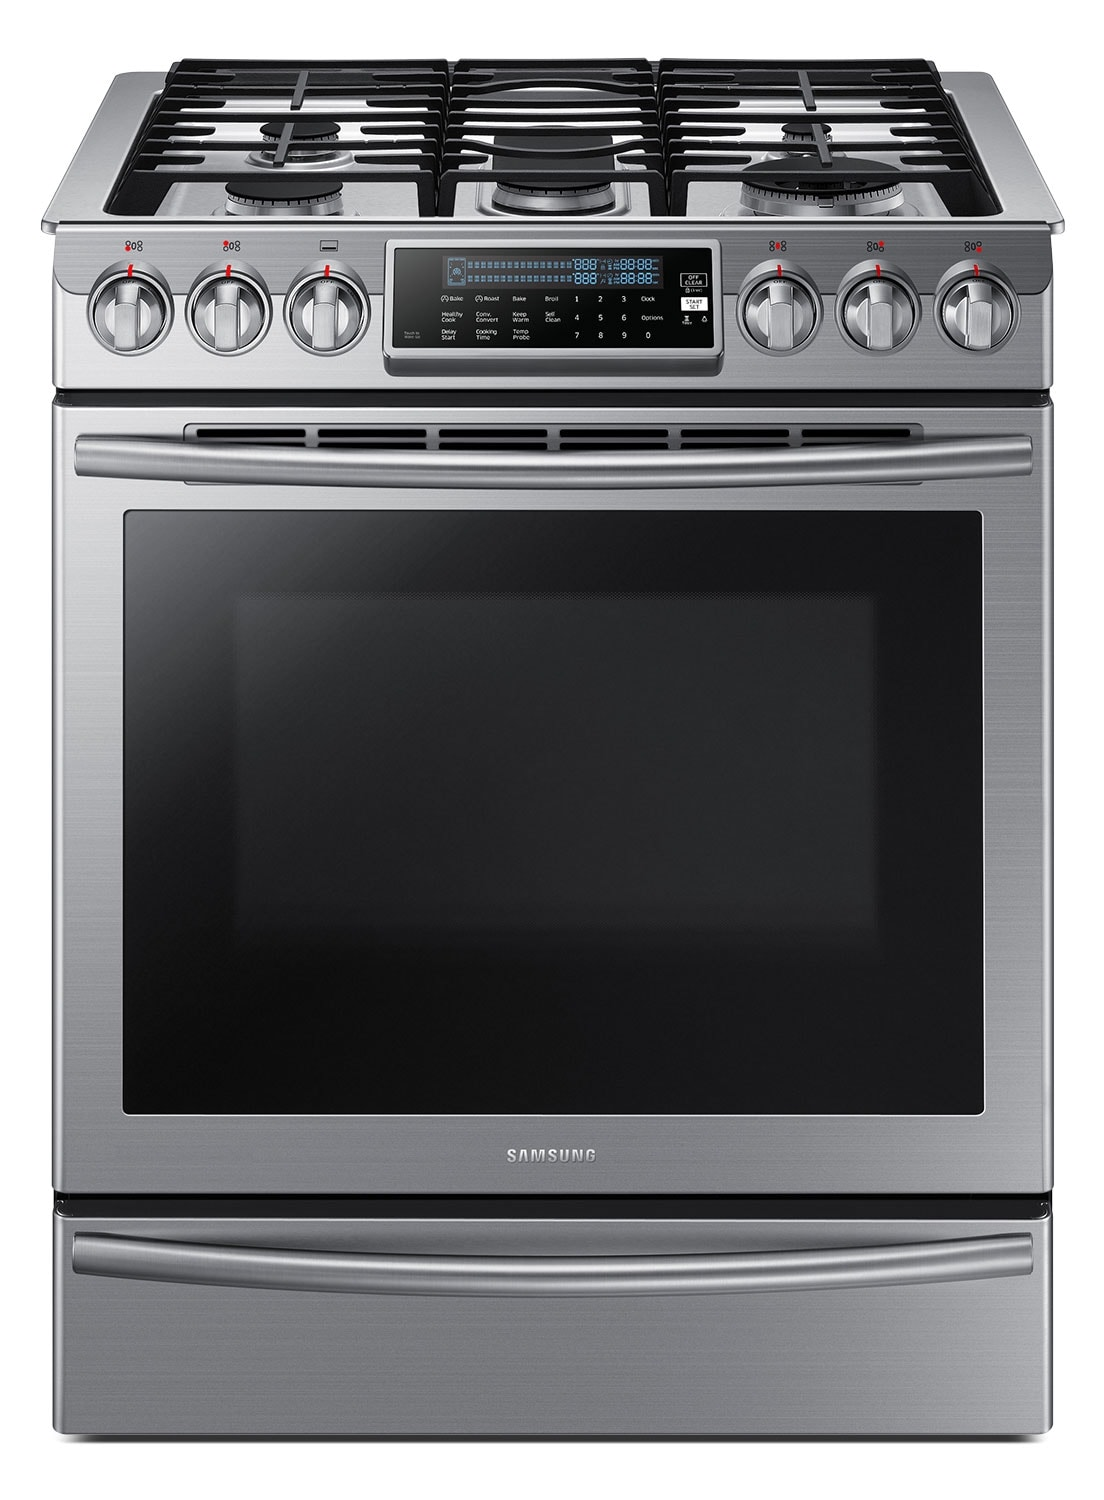 Cooking Products - Samsung Stainless Steel Slide-In Gas Range (5.8 Cu. Ft.) - NX58H9500WS